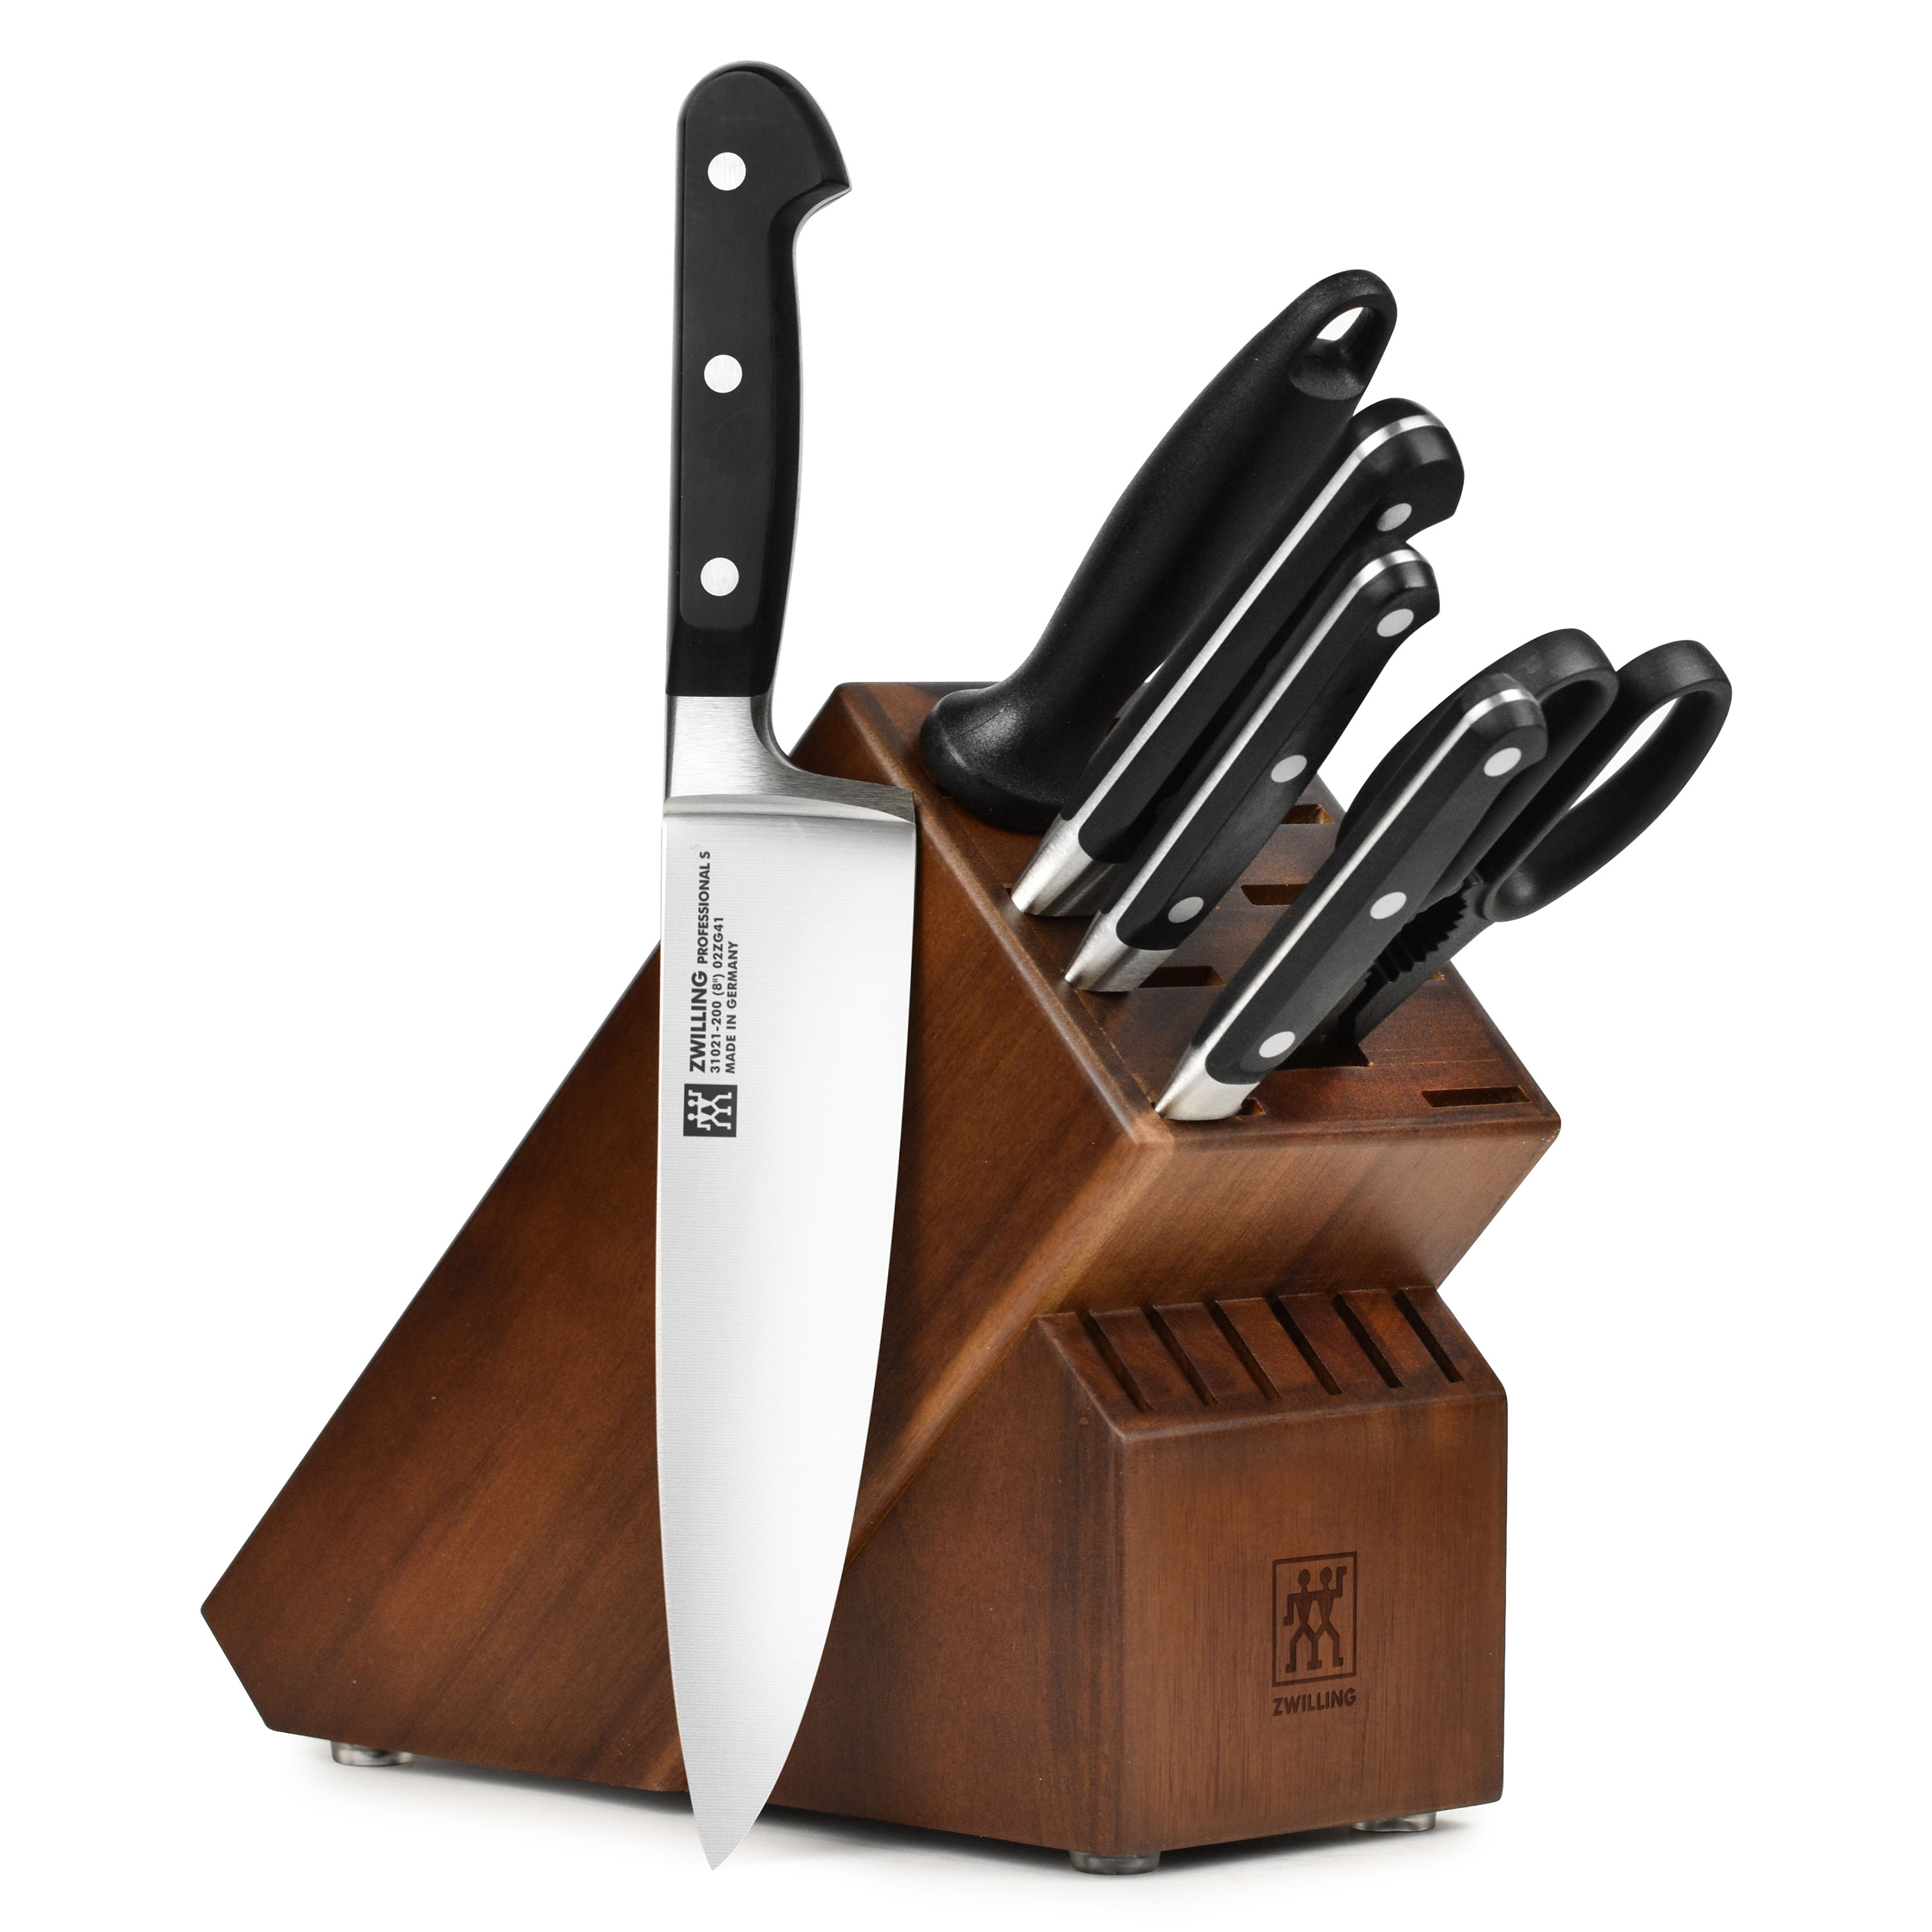 Professional Kitchen Cutlery Sets